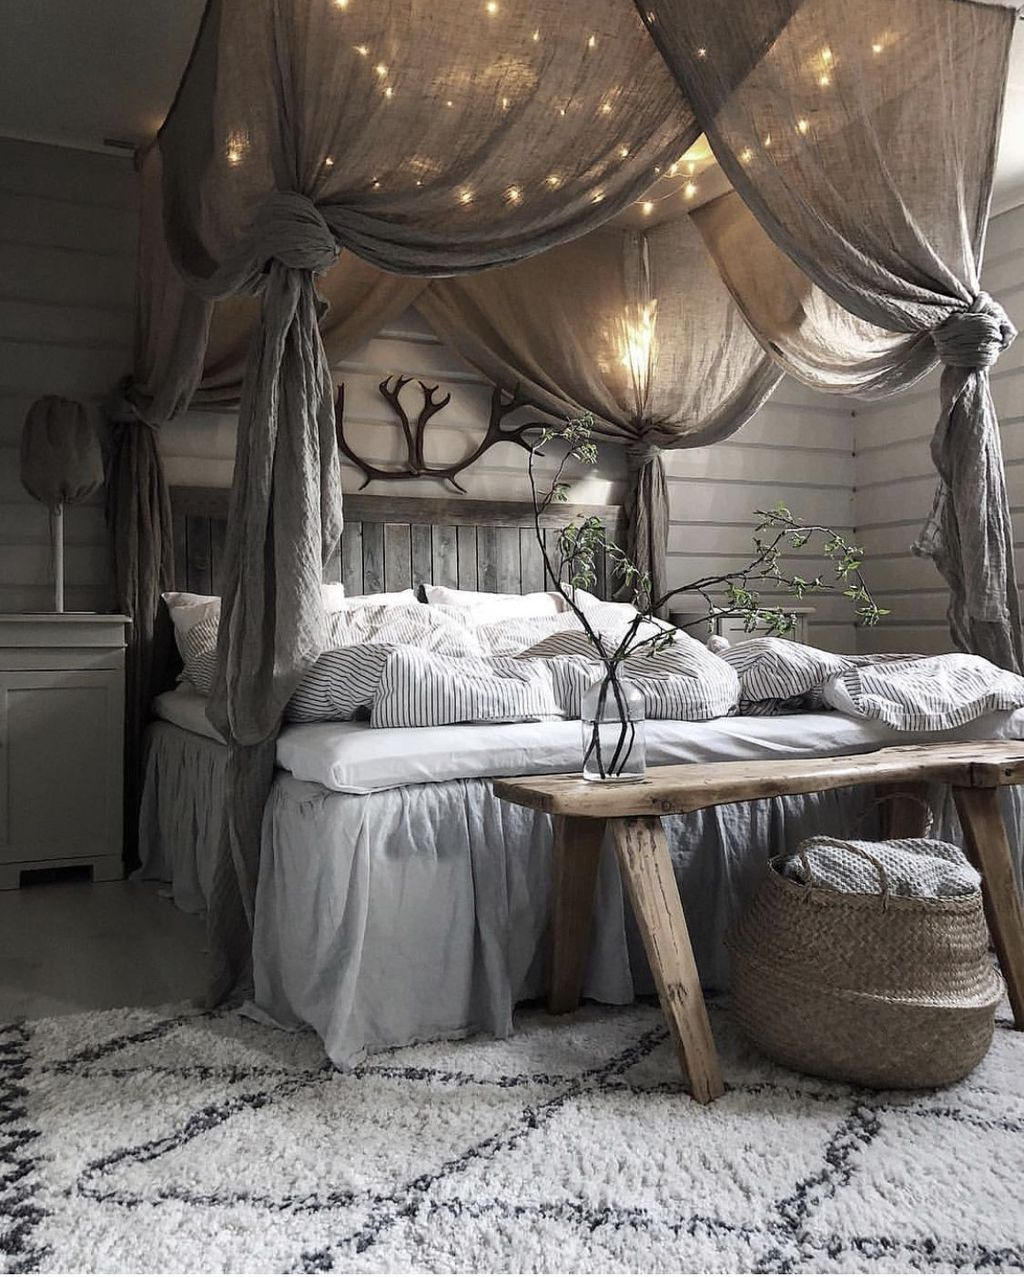 Superb 41 Glamorous Canopy Beds Ideas For Romantic Bedroom Homystyle Home Interior And Landscaping Oversignezvosmurscom